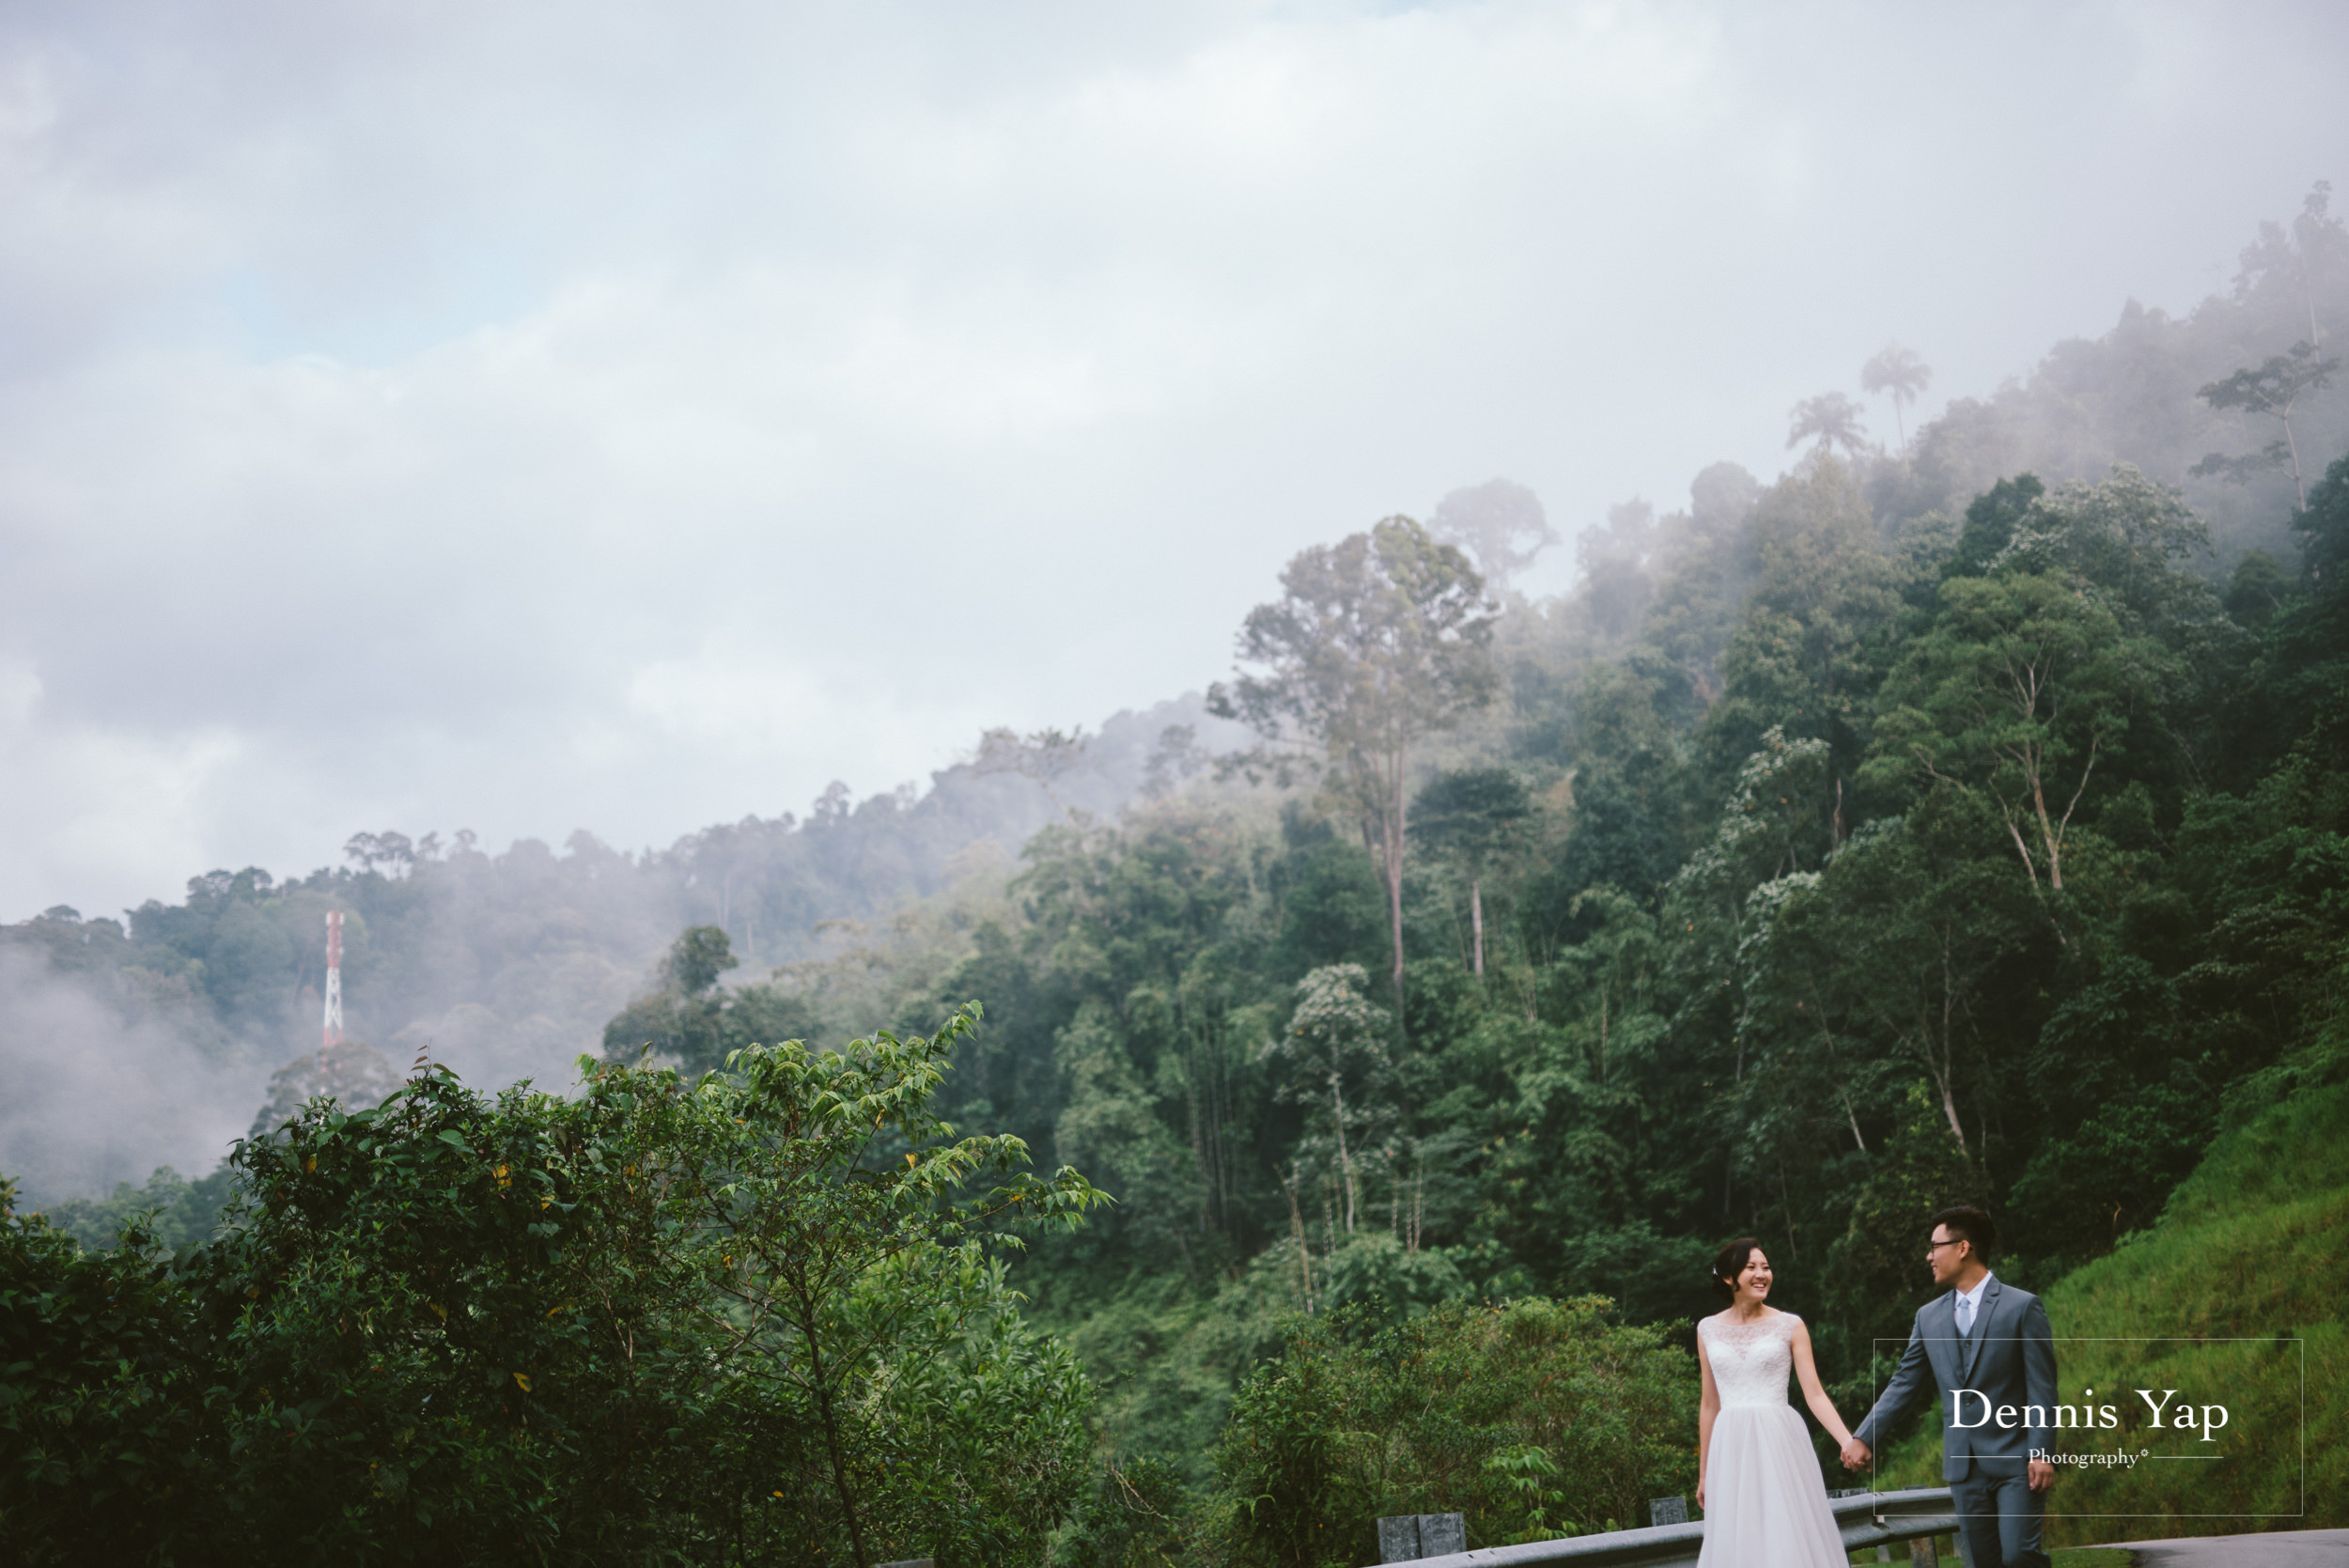 steven ching pre wedding hulu langat namwah road background beloved lookout point dennis yap photography malaysia top photographer-3.jpg